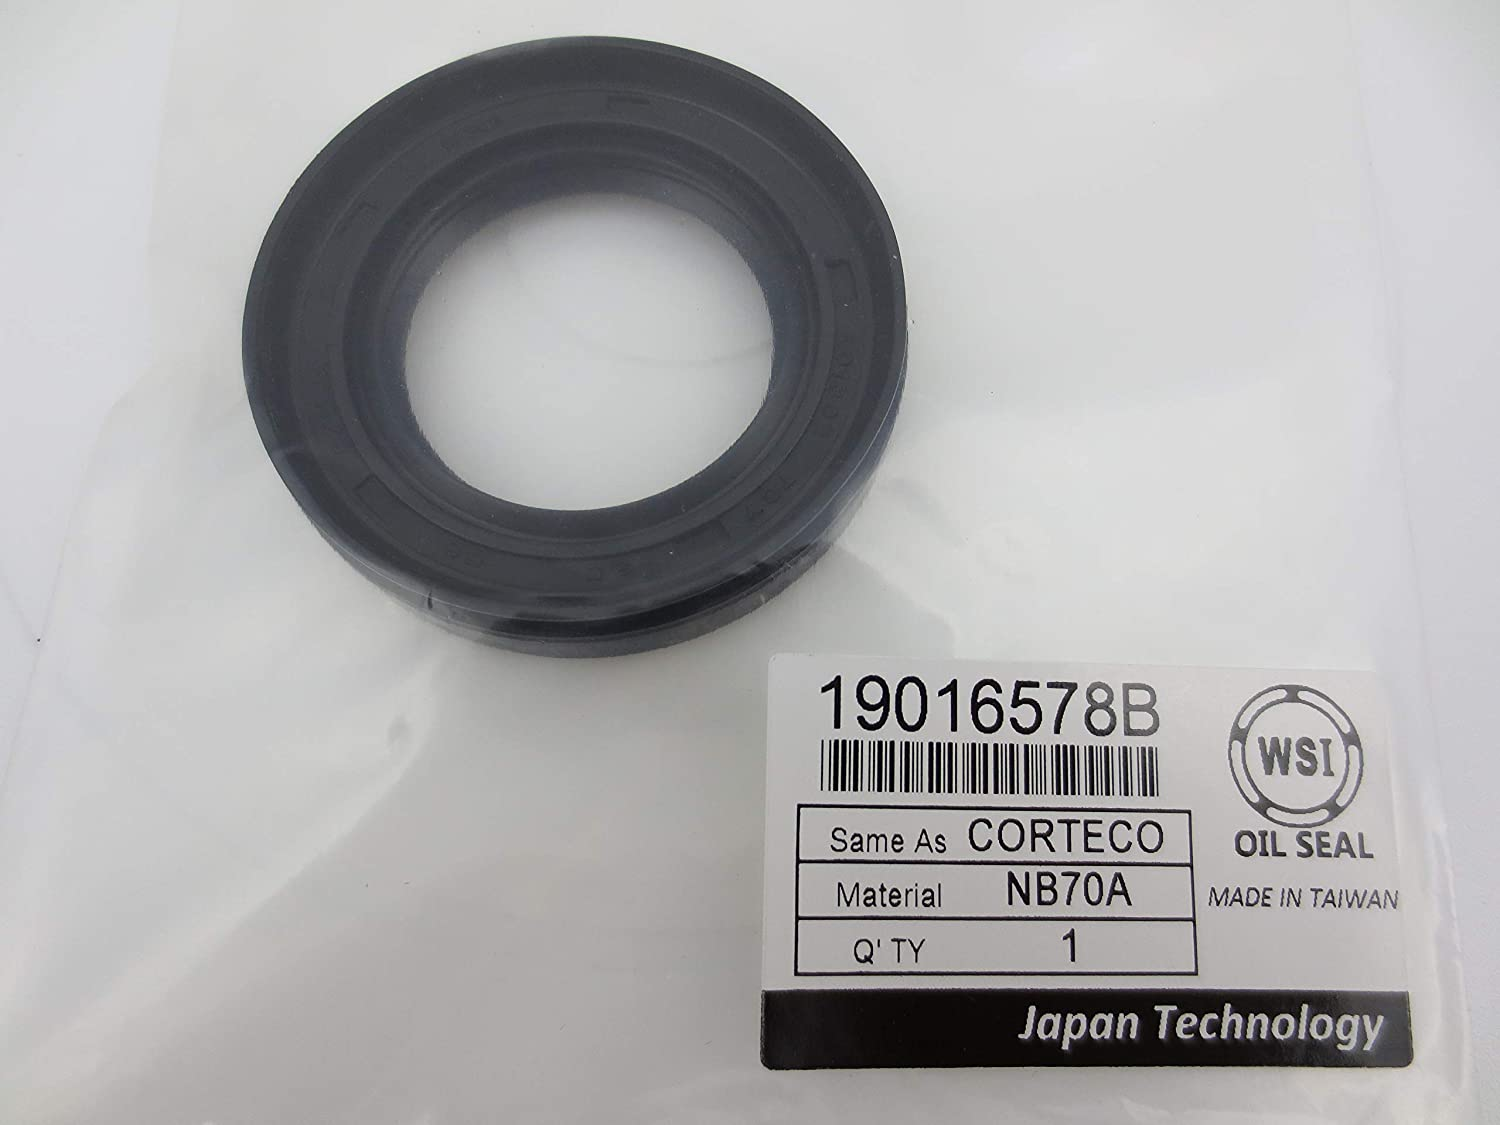 WSI 19016578B Shaft Seal differential Corteco Arlington Mall - Cheap SALE Start for